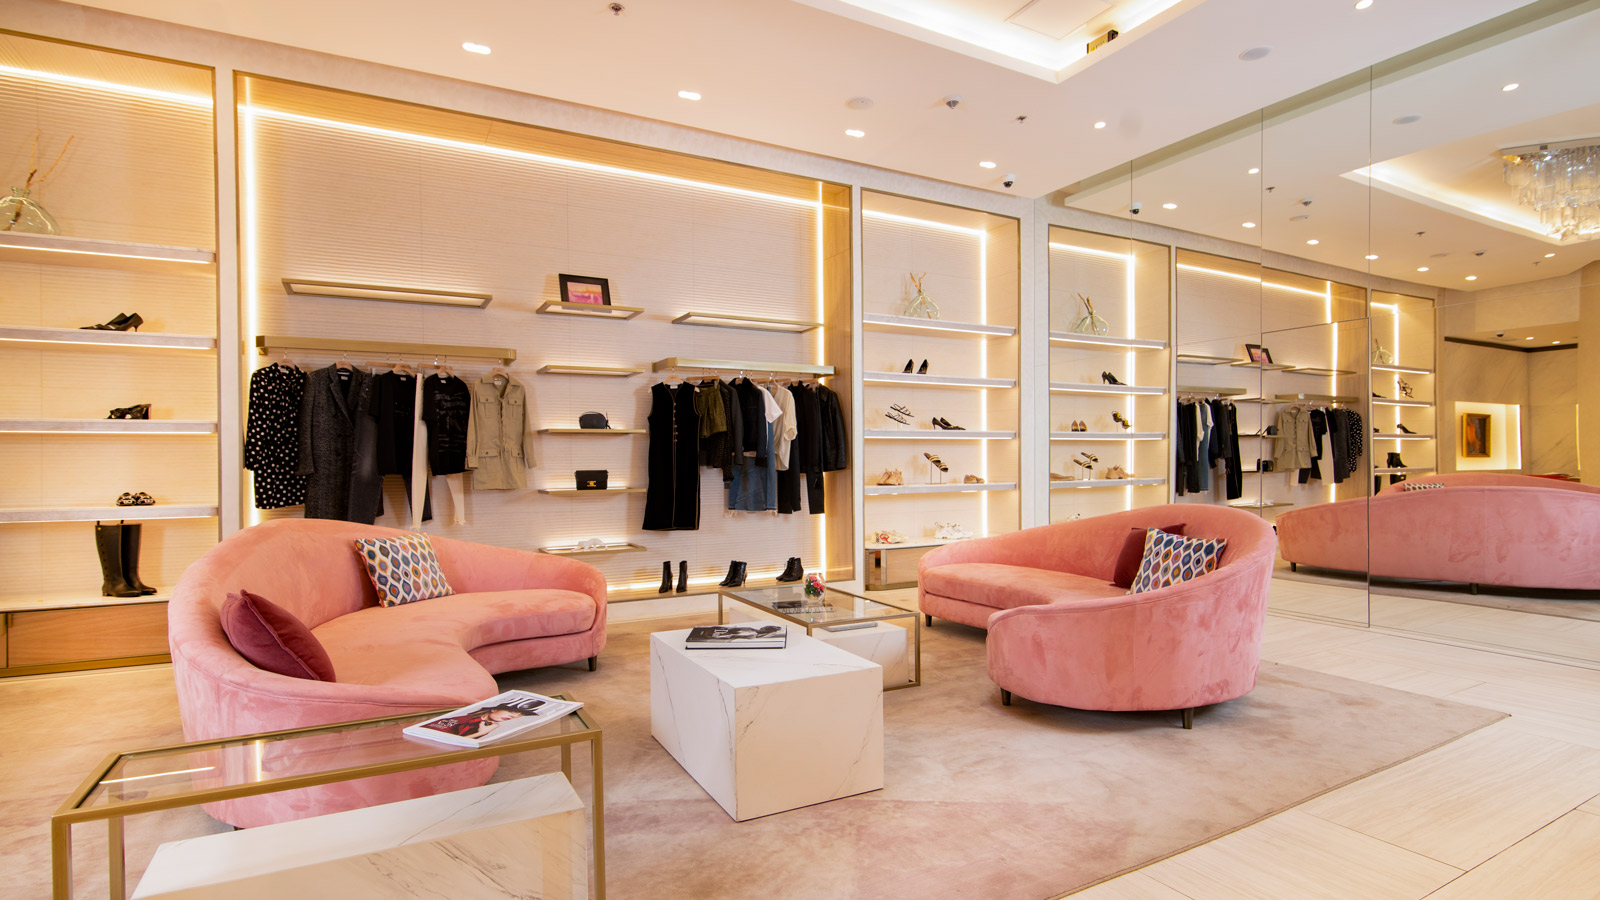 PORCELANOSA Group Projects: ÂME, a high-end shopping experience with Porcelanosa